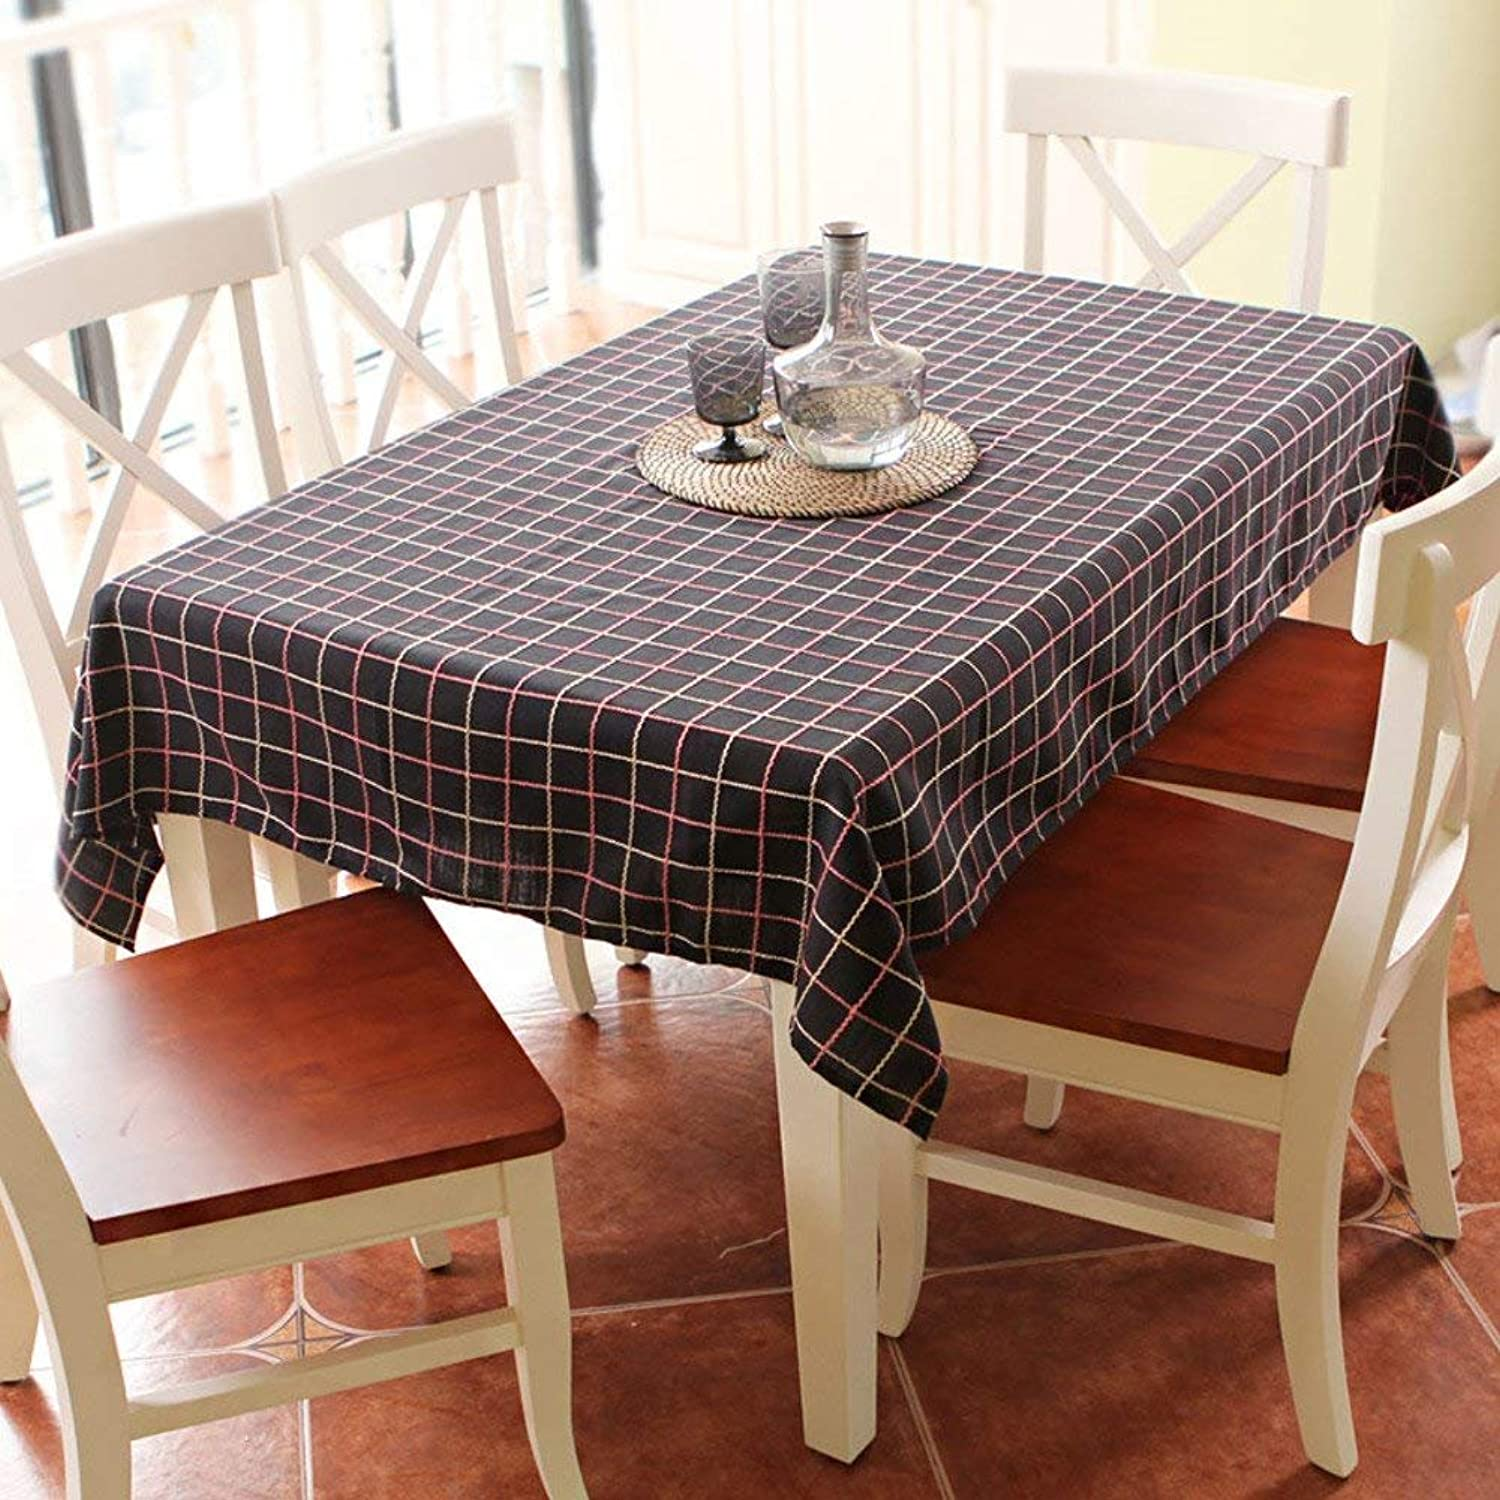 Water in Cotton Rural Fabric of The Small Table Cloth of Fresh Coffee Matte Nordic-A 135x135cm(53x53cm)